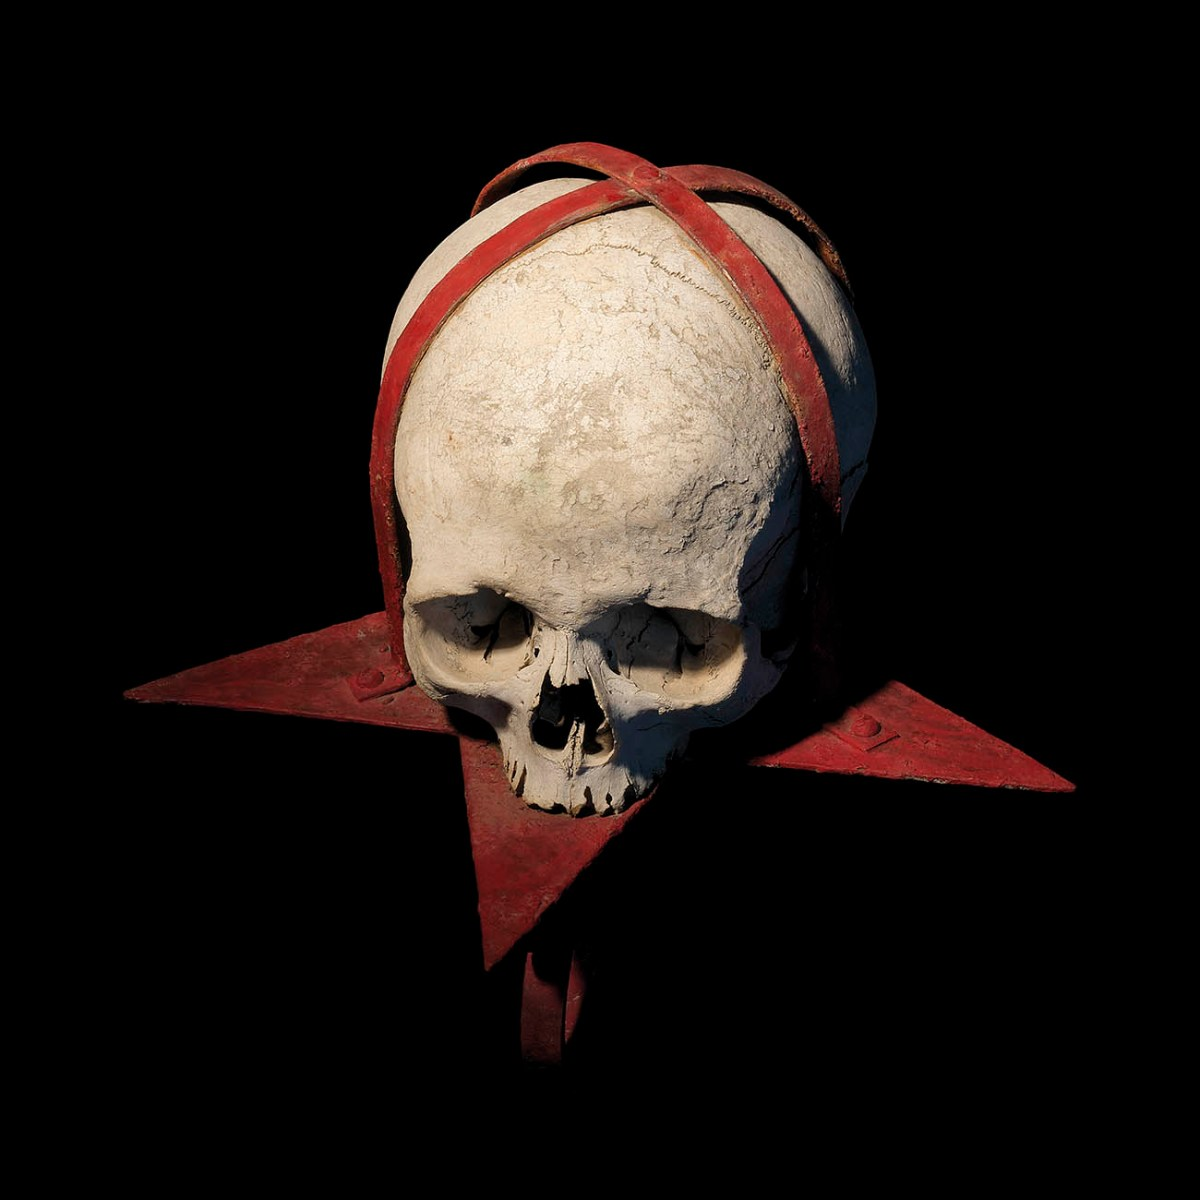 https://i1.wp.com/www.sarahannant.com/wp-content/uploads/2015/08/Skull-used-for-Ritual-Magic.jpg?fit=1200%2C1200&ssl=1